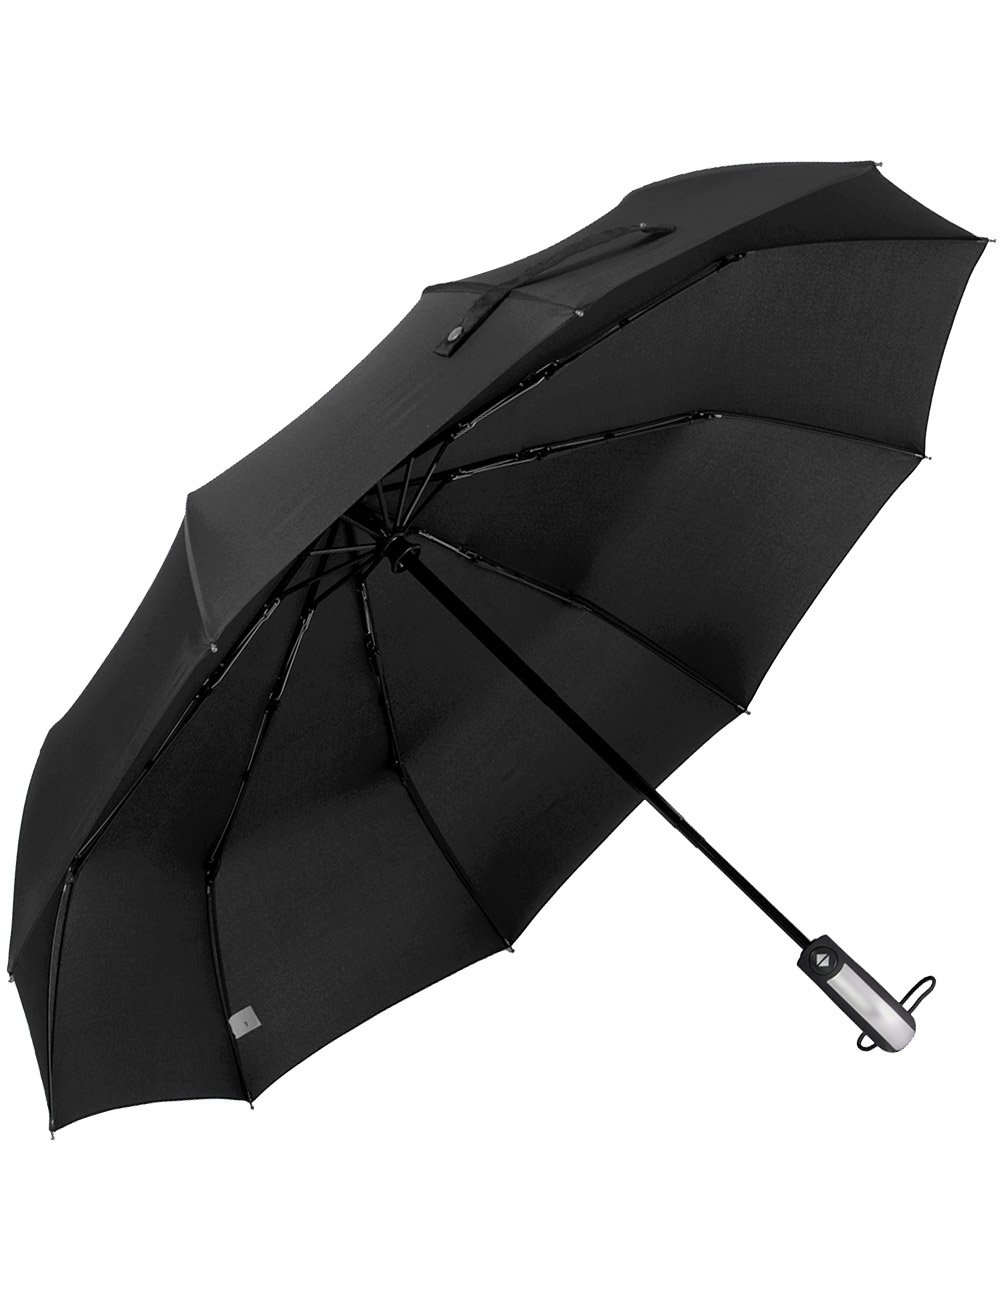 Beownwear Travel Umbrella Windproof Folding Automatic Umbrellas 10 Ribs(Black)